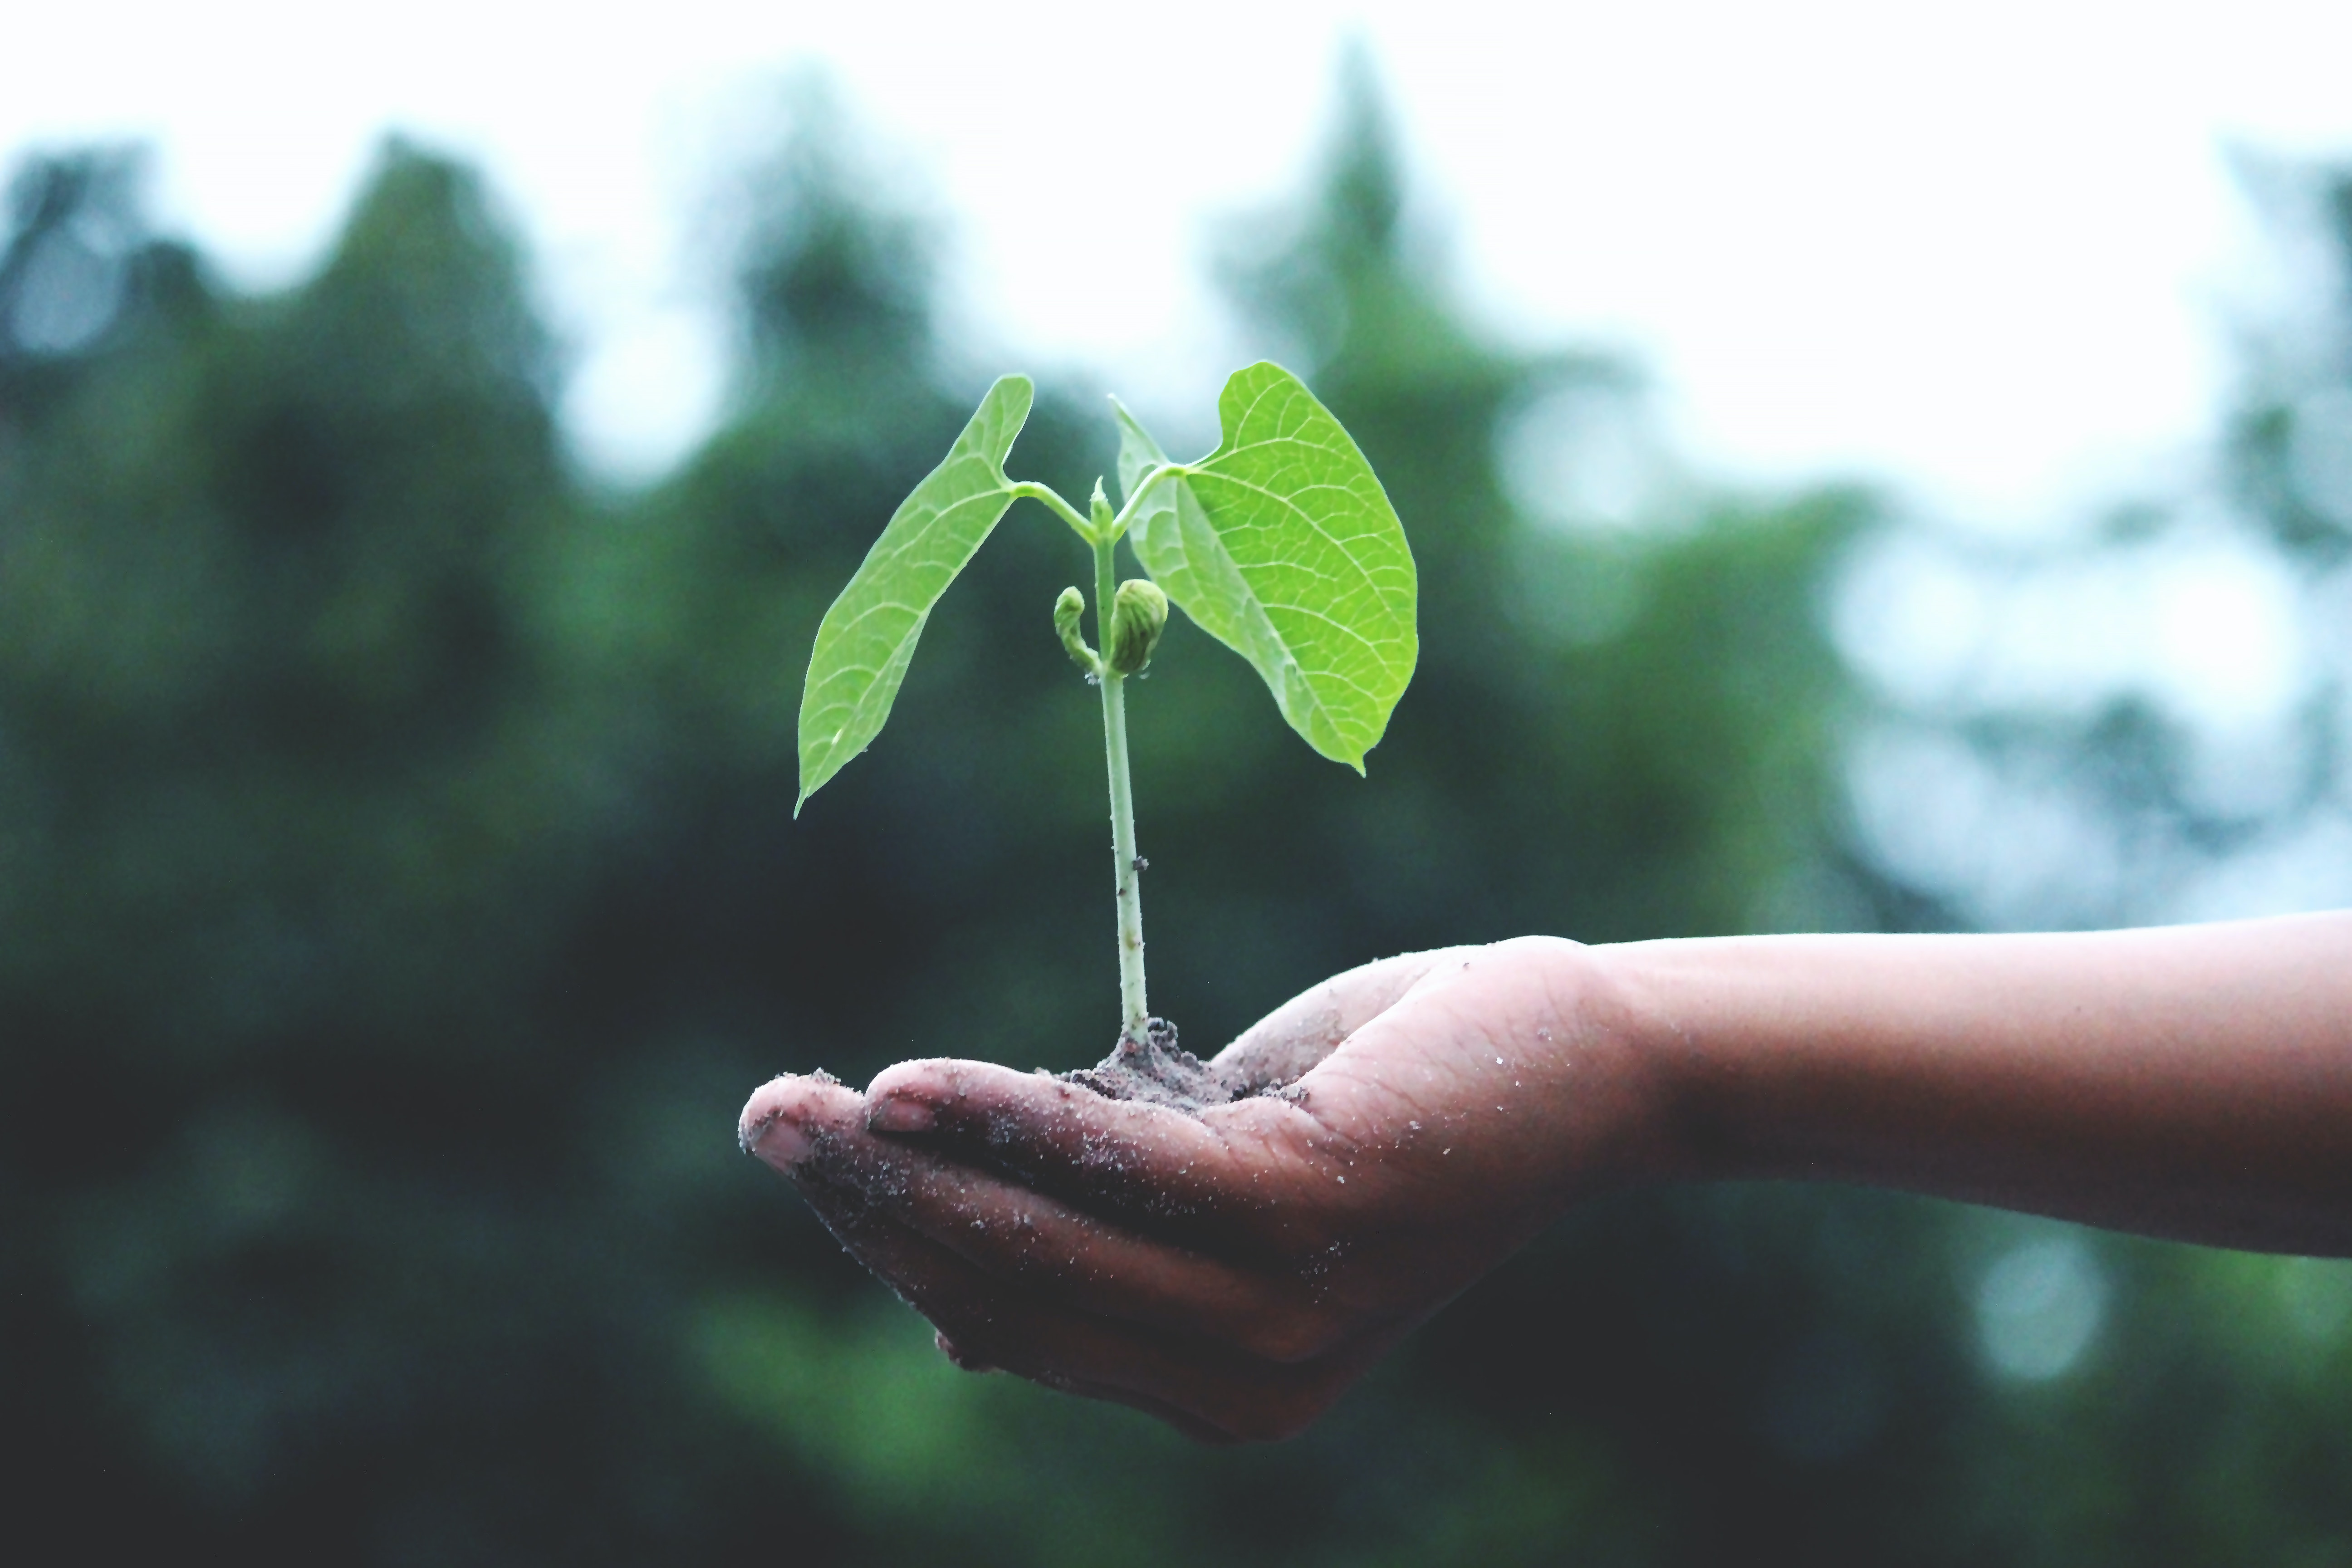 A small hand holds a small plant that has just began to grow